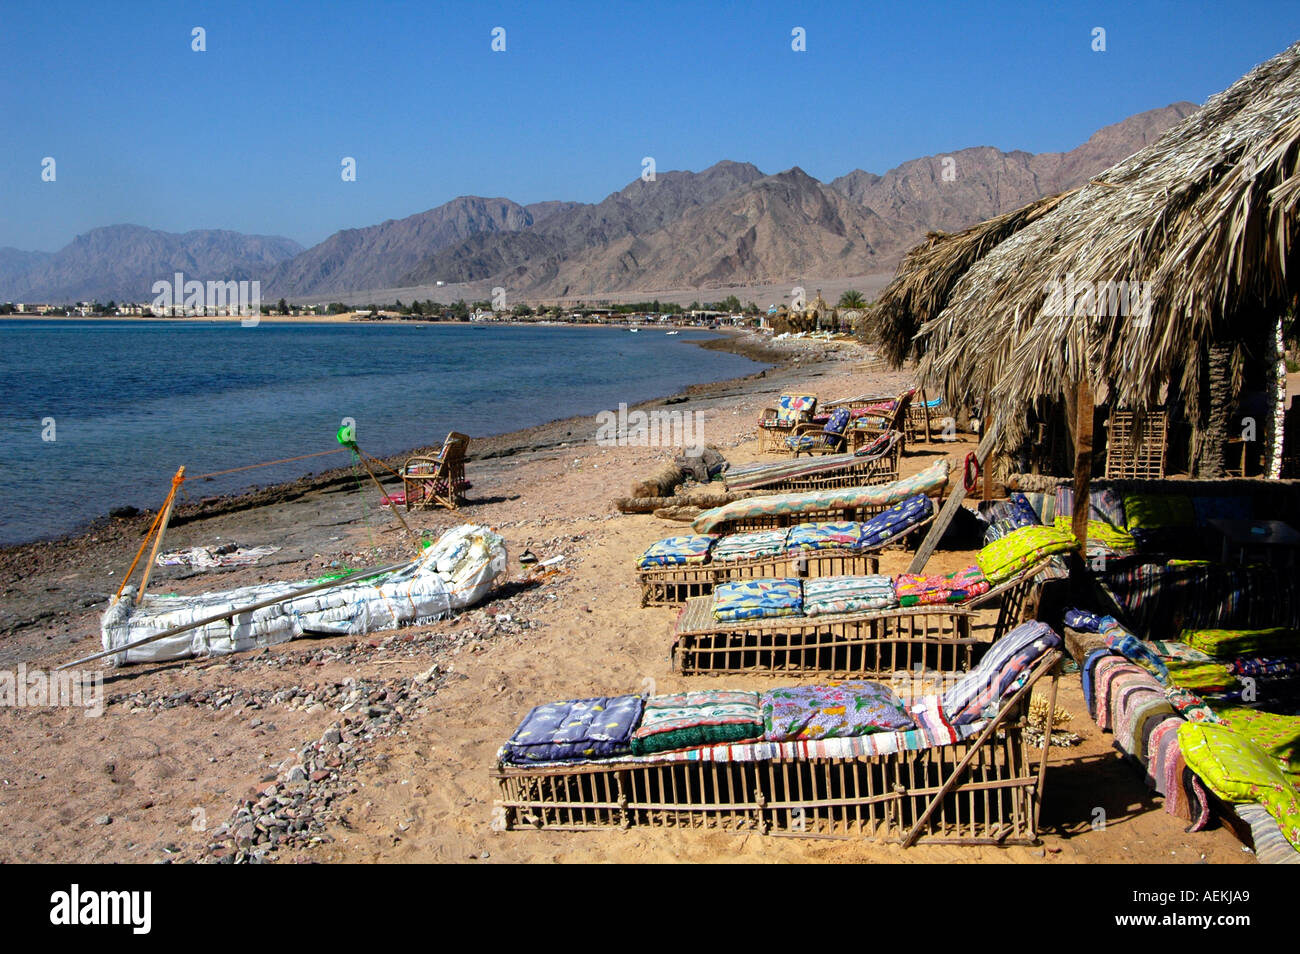 View of Nuweiba Tarabin beach in Nuweiba also spelled: Nueiba a coastal town in the eastern part of Sinai Peninsula, Egypt - Stock Image